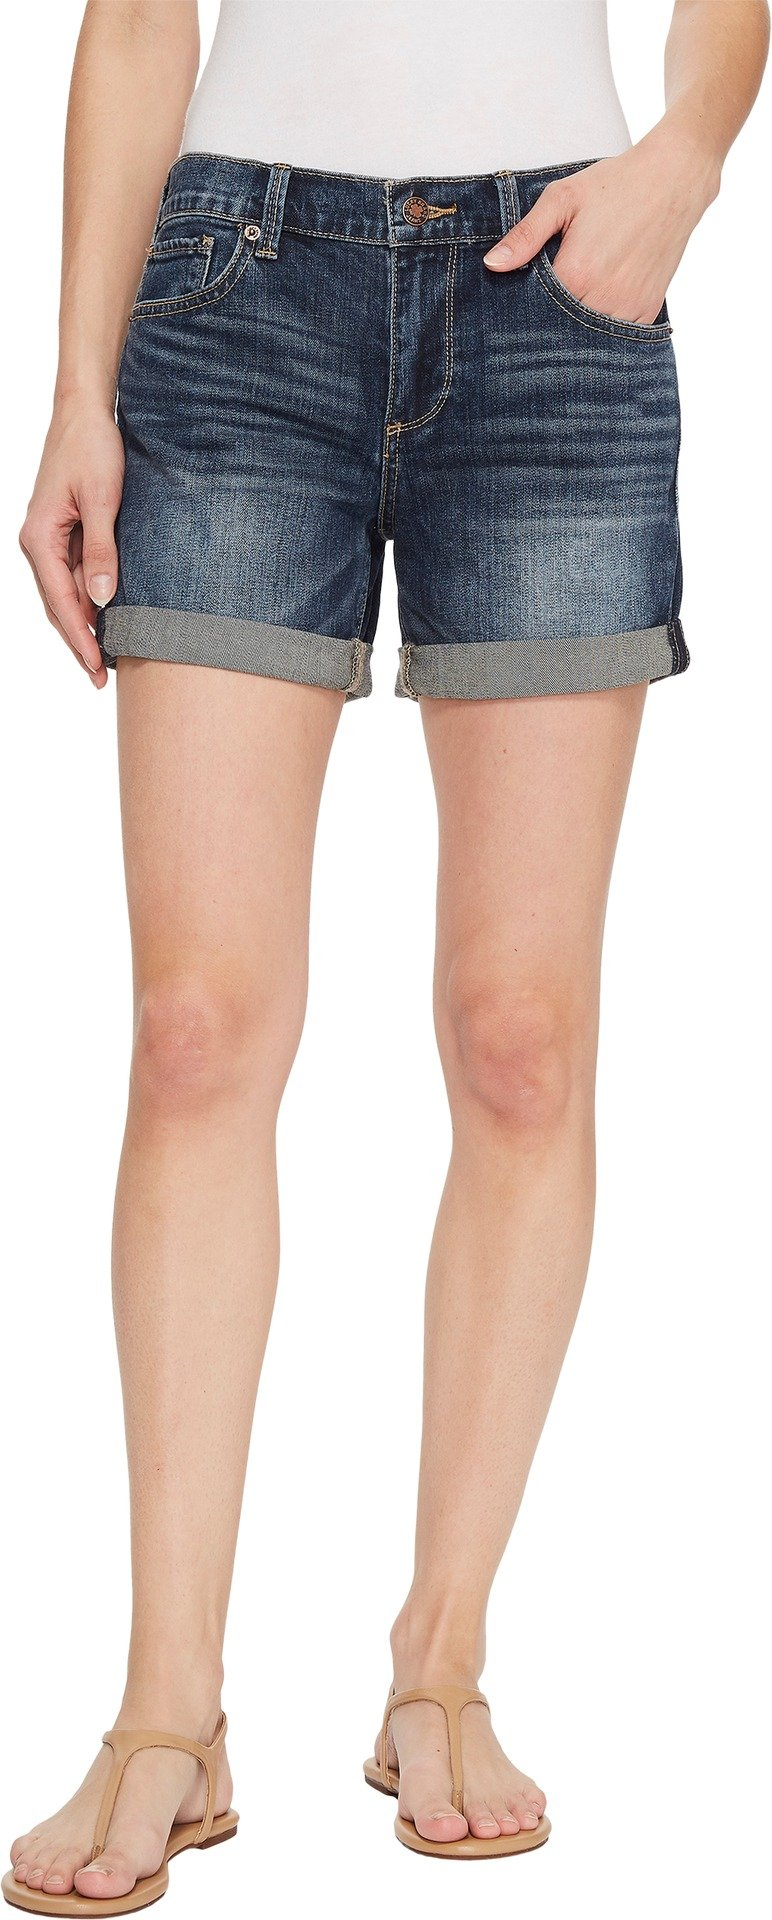 Lucky Brand Women's Mid Rise Roll up Short, Timber Lakes, 32